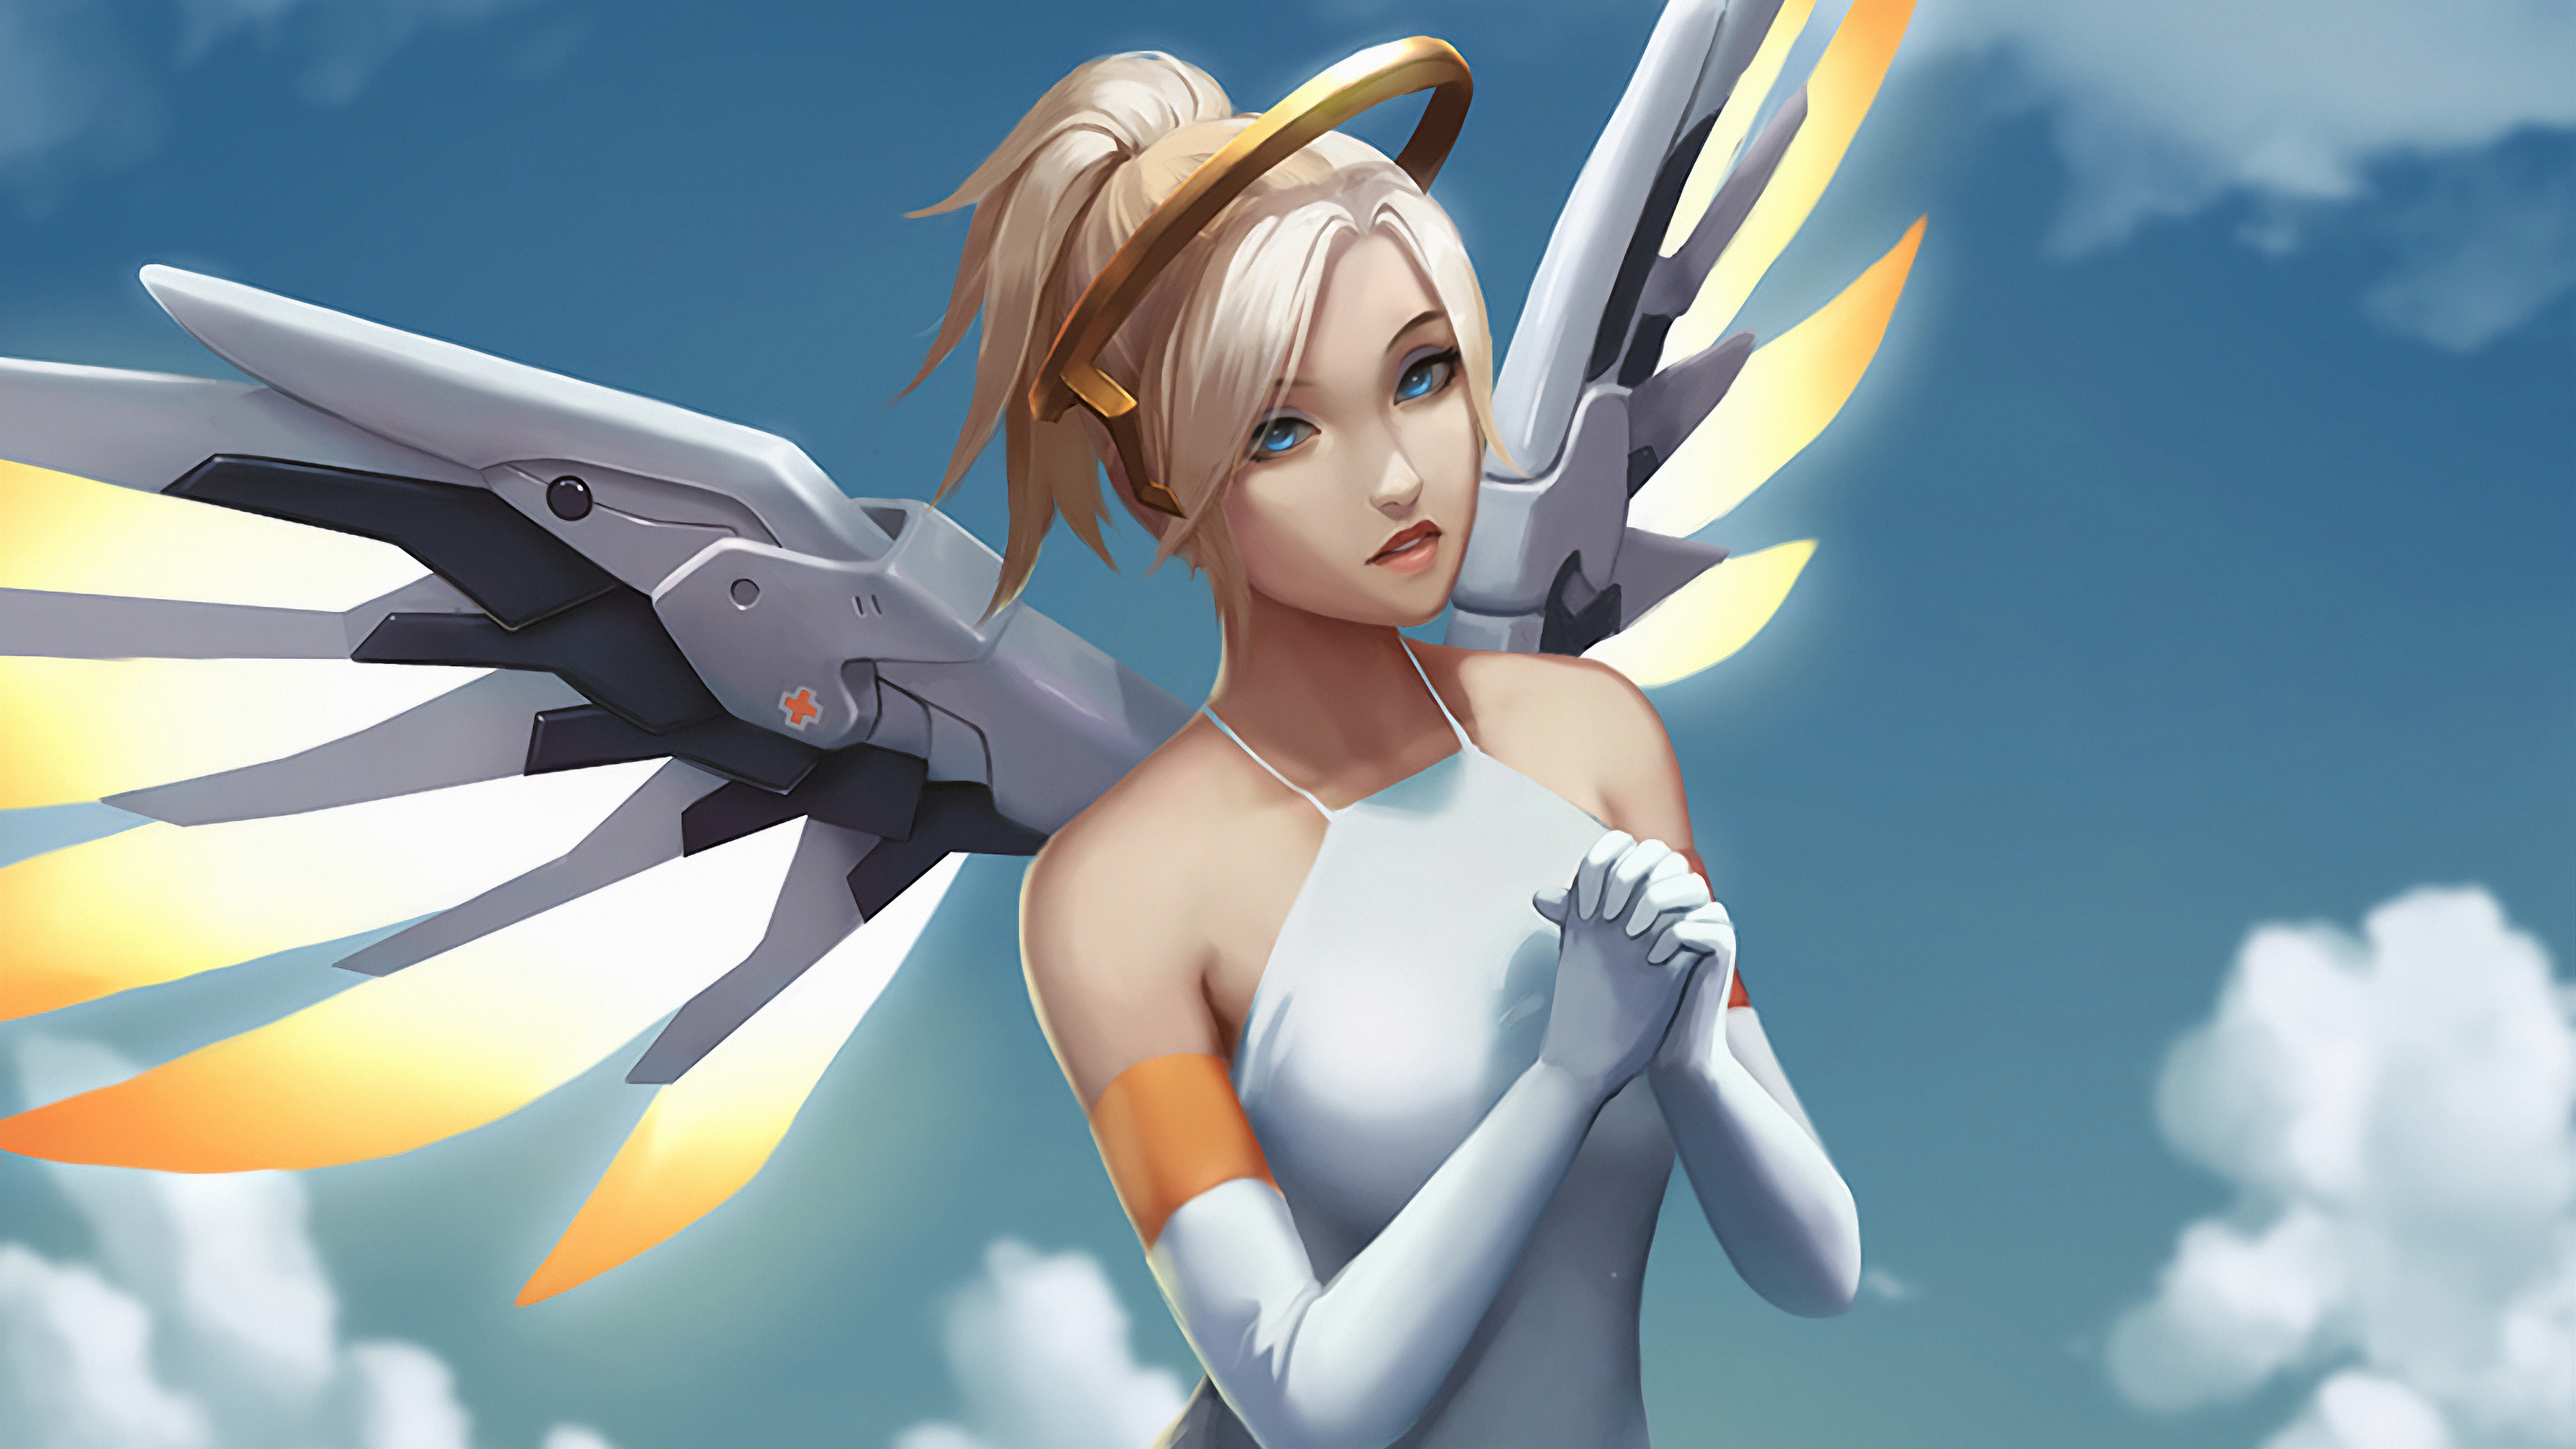 Mercy Overwatch Art 4k Hd Games 4k Wallpapers Images Backgrounds Photos And Pictures